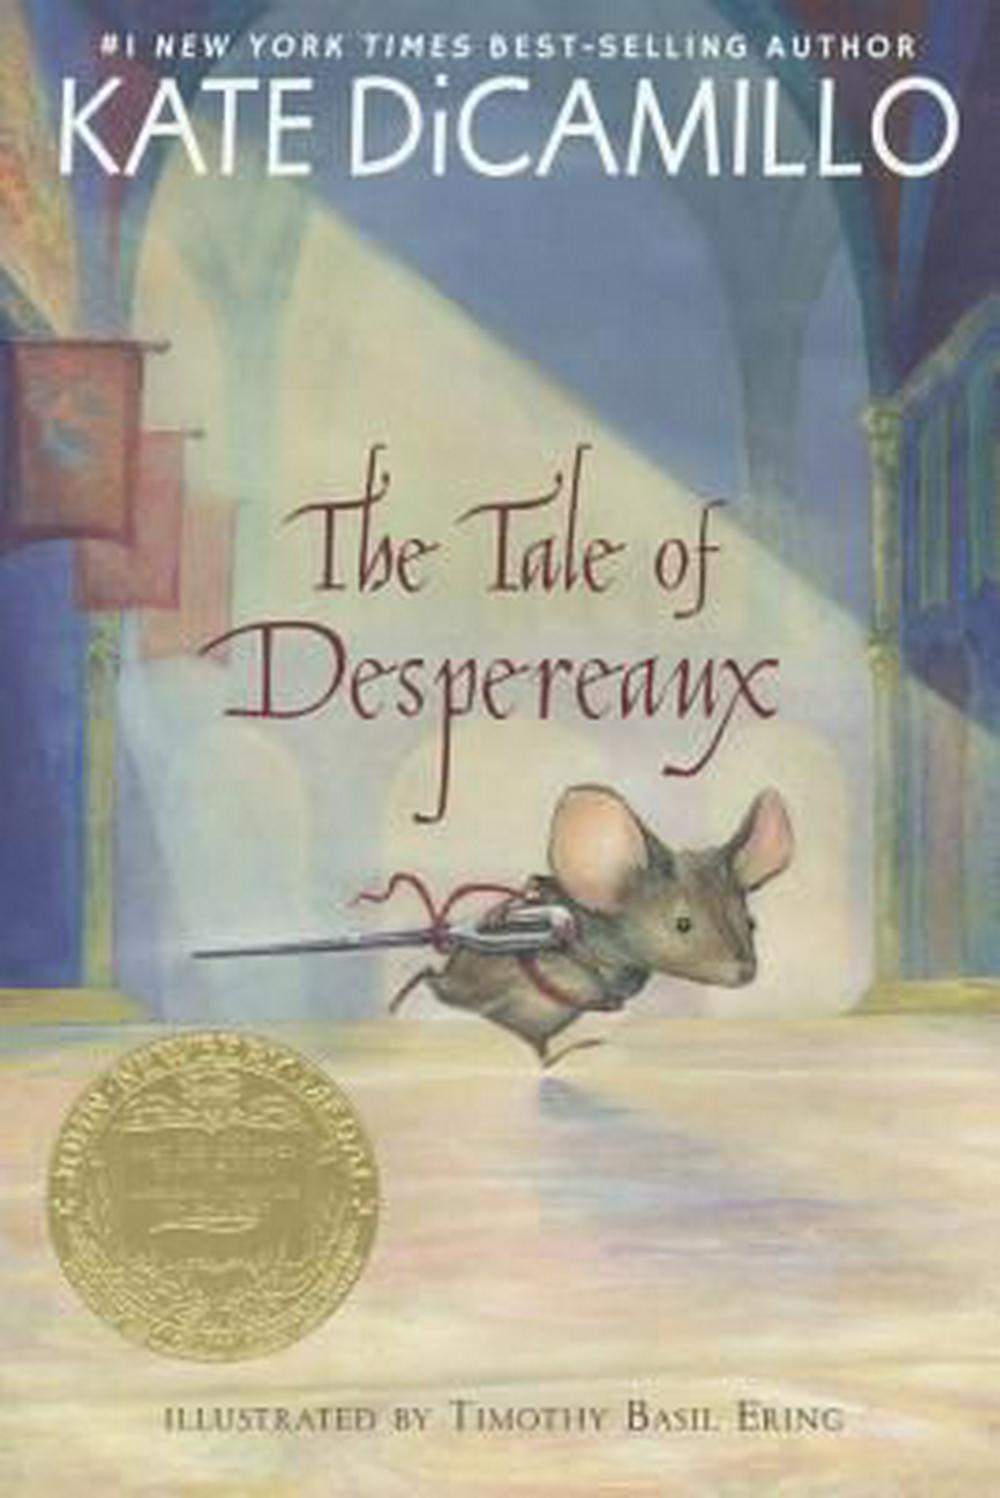 a comparison of the tale of despereaux by kate dicamillo and the trumpet of the swan by e b white The tale of despereaux is one of my favorite literature circle the trumpet of the swan by eb white -between the tale of despereaux by kate dicamillo.